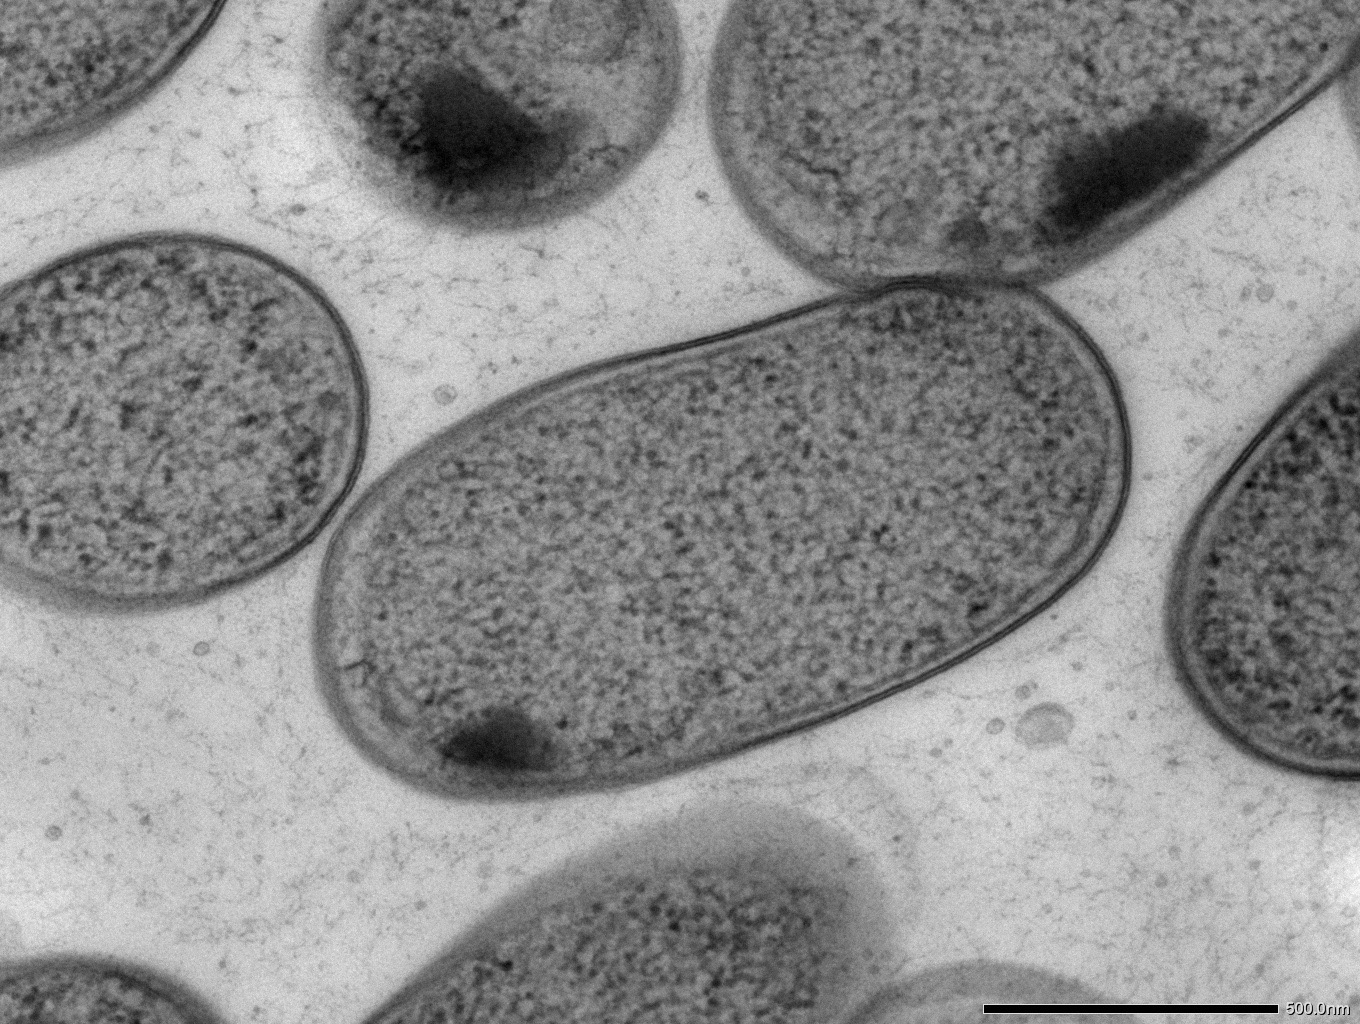 Transmission electron microscopy (TEM) of in vitro-cultured Klebsiella (Kp-2H7).